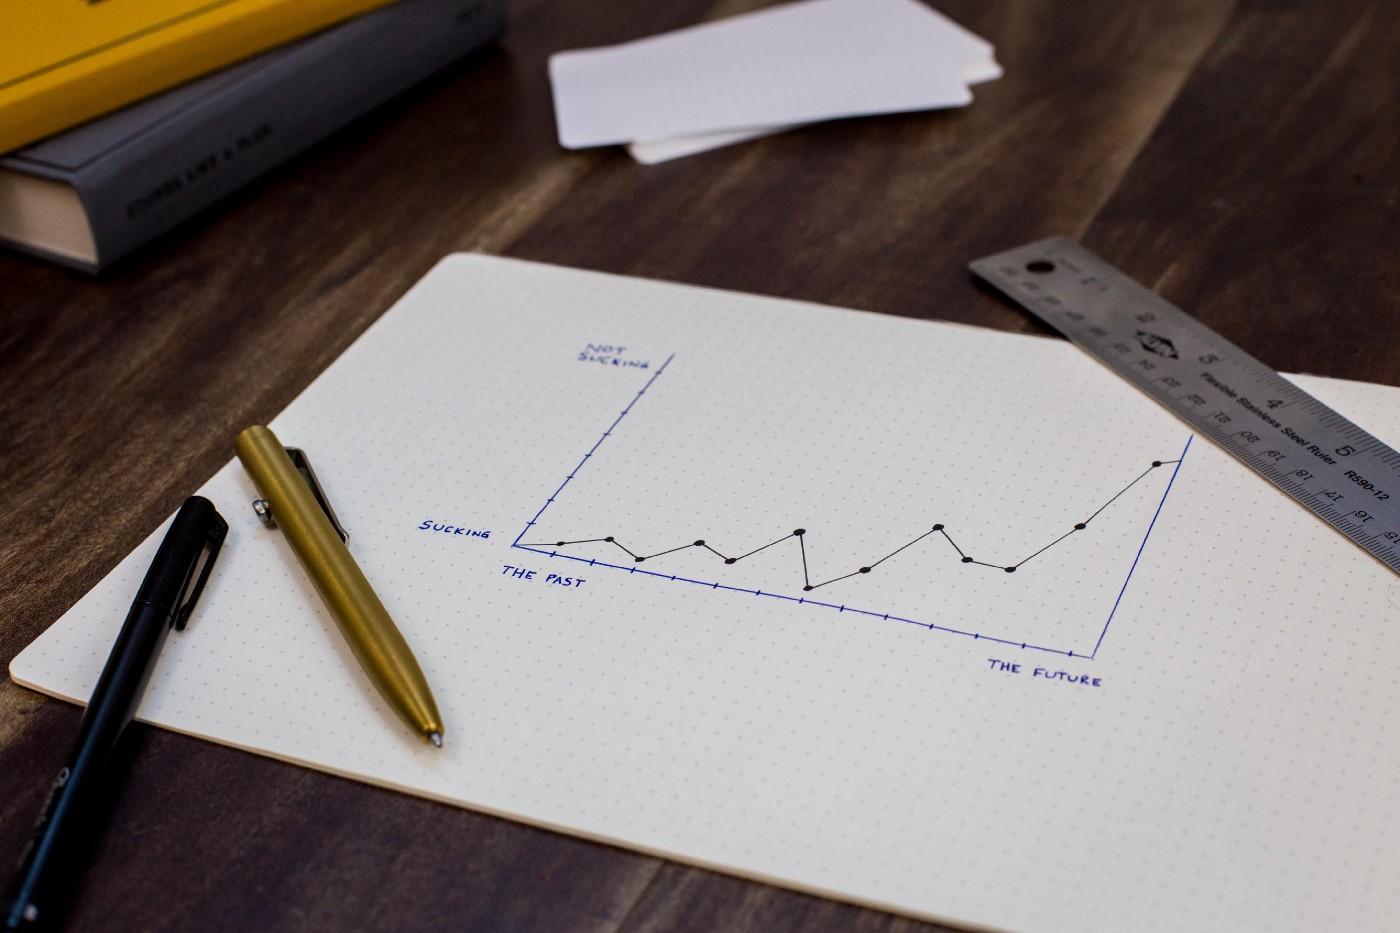 a drawing of an upwards trending graph with ruler and pencil